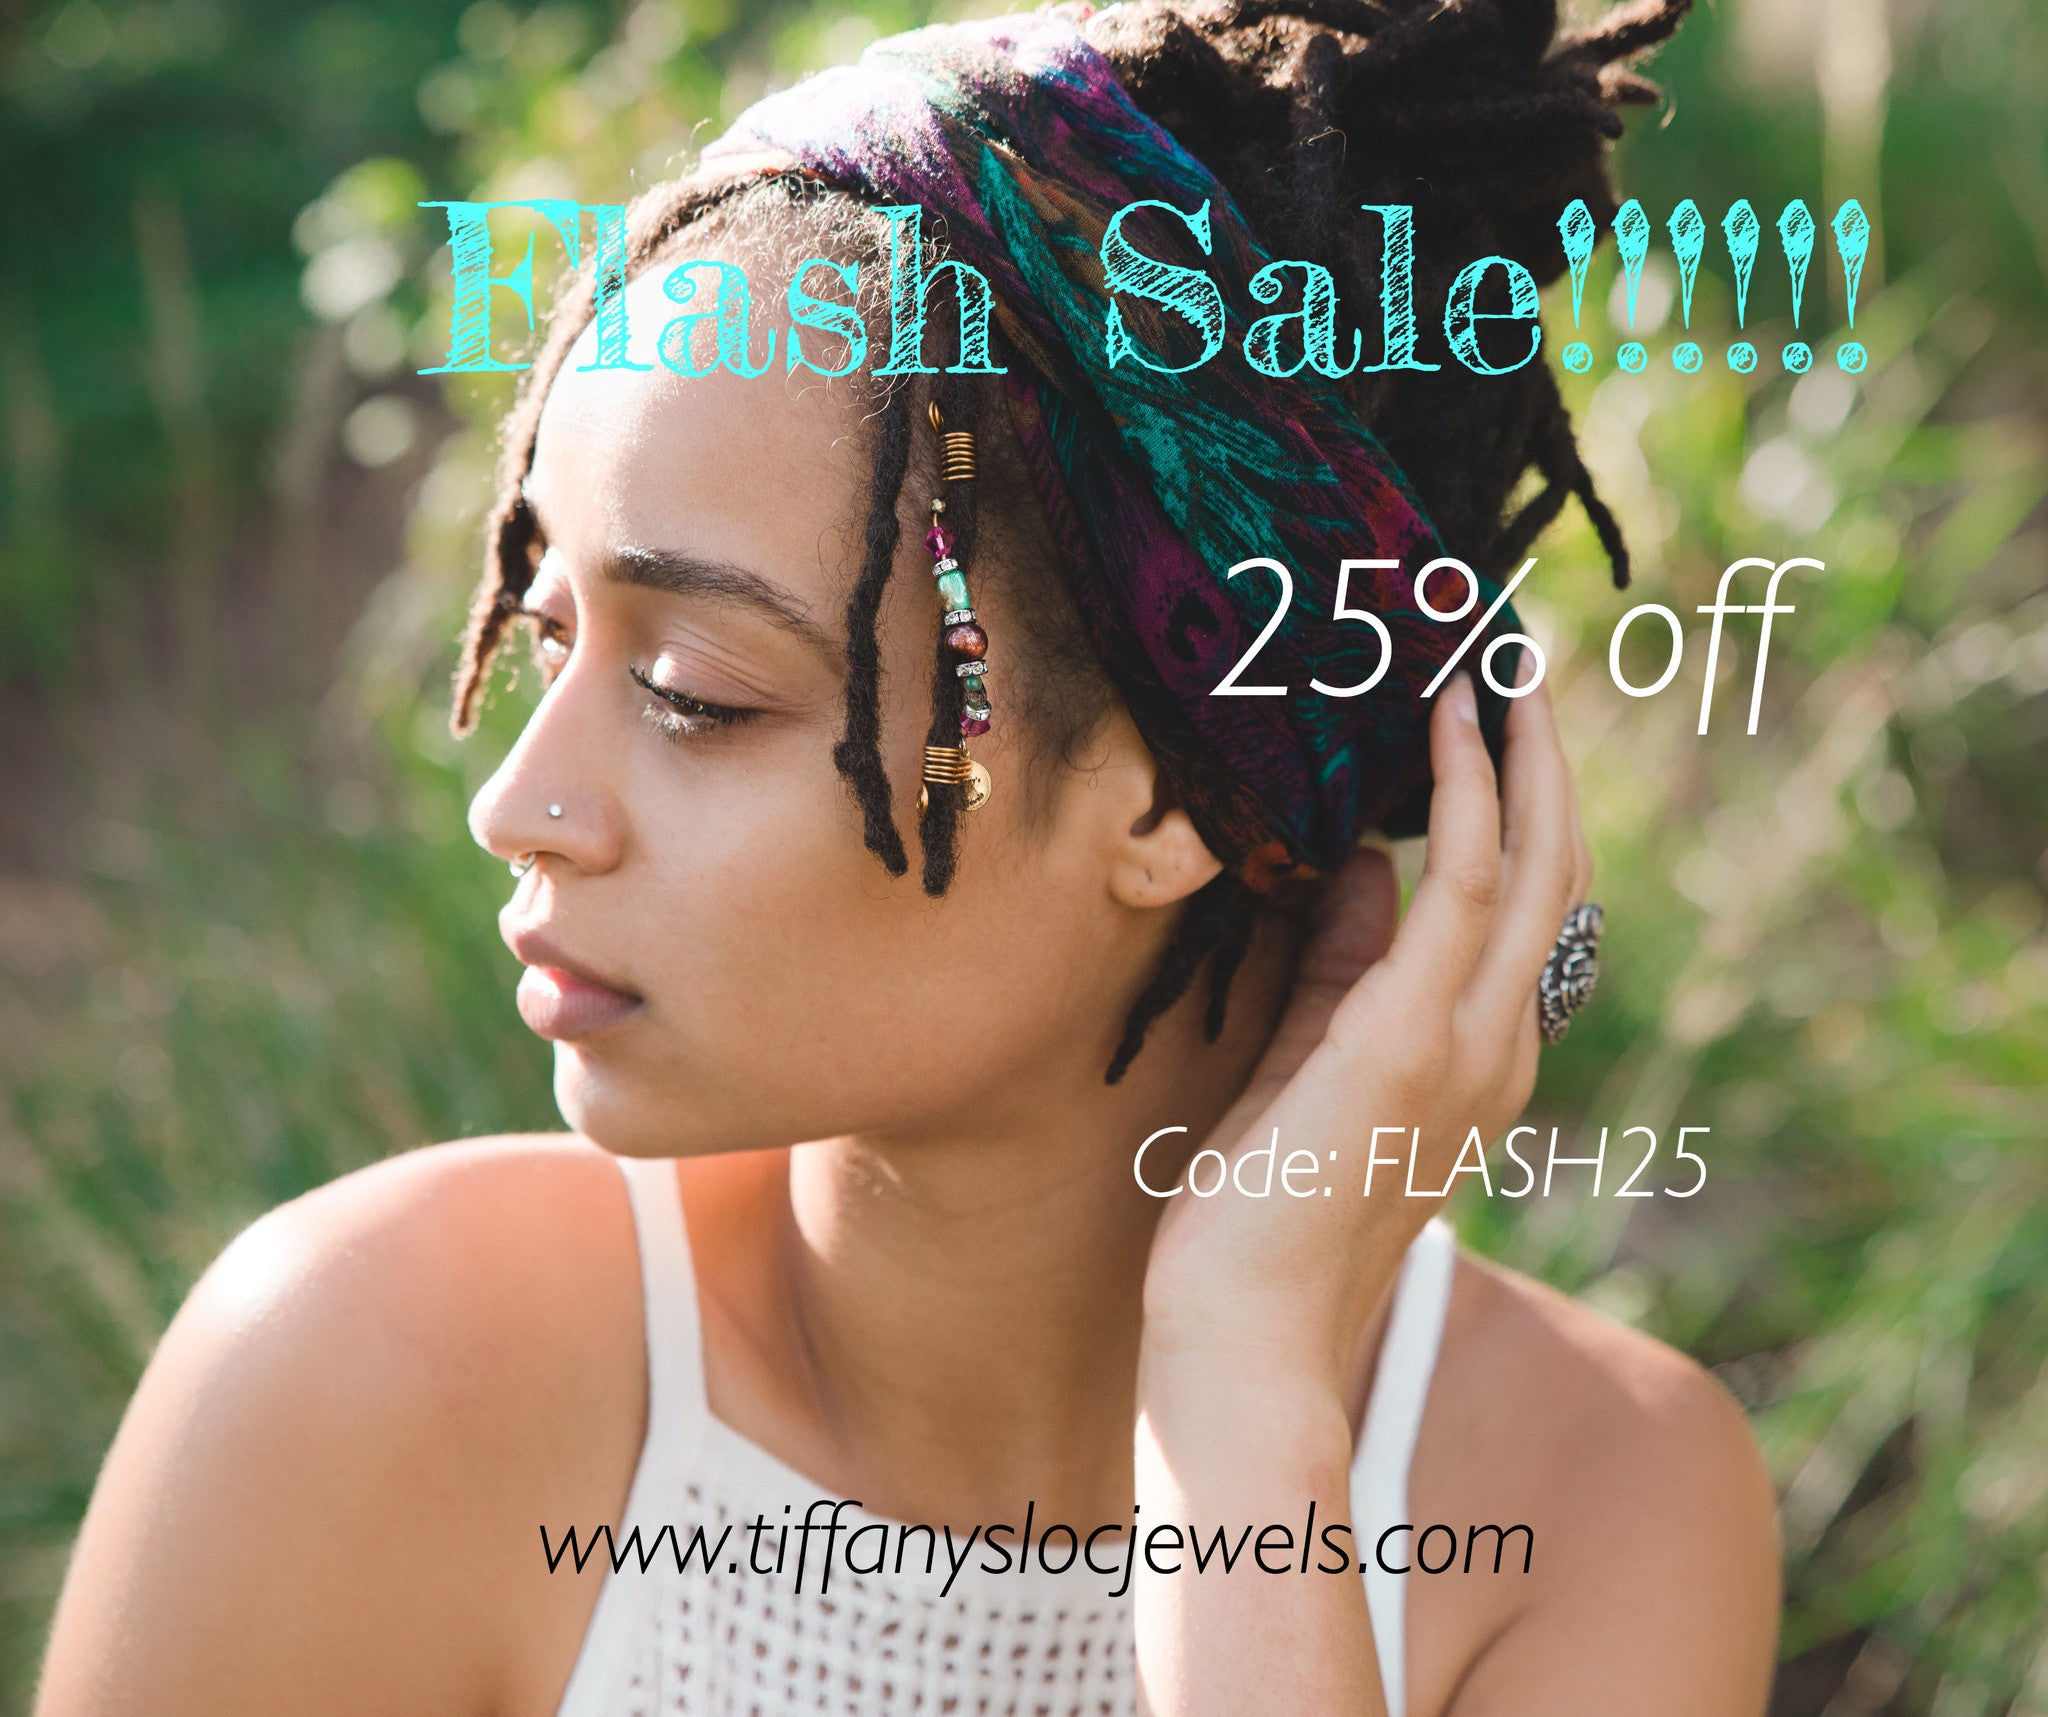 Flash Sale! 25% off